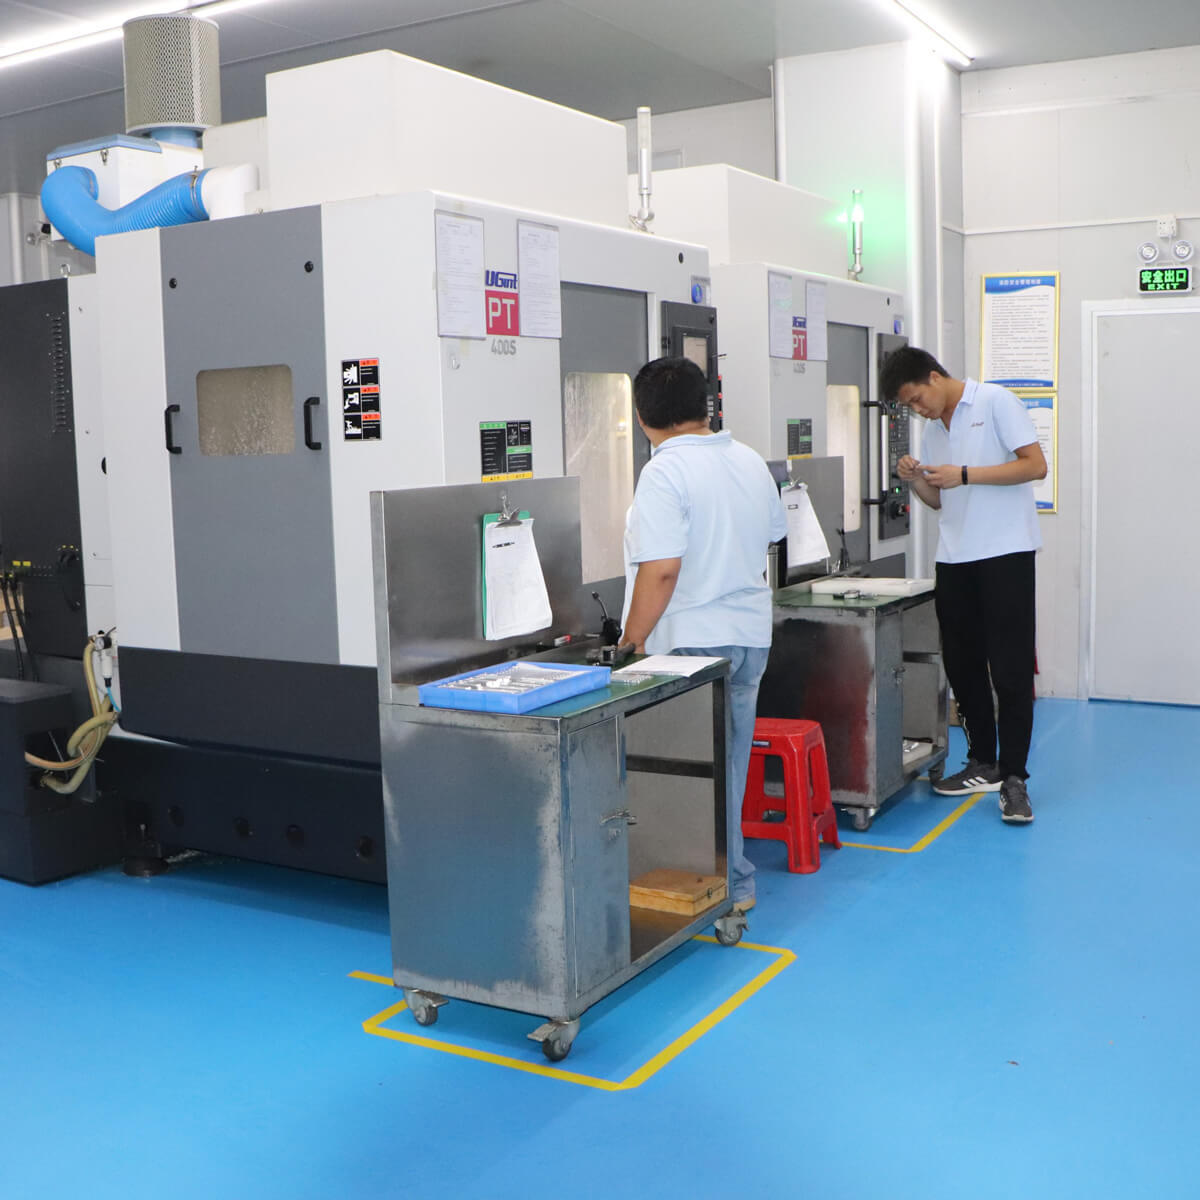 Xavier high-quality materials machining small metal parts measuring system film thickness